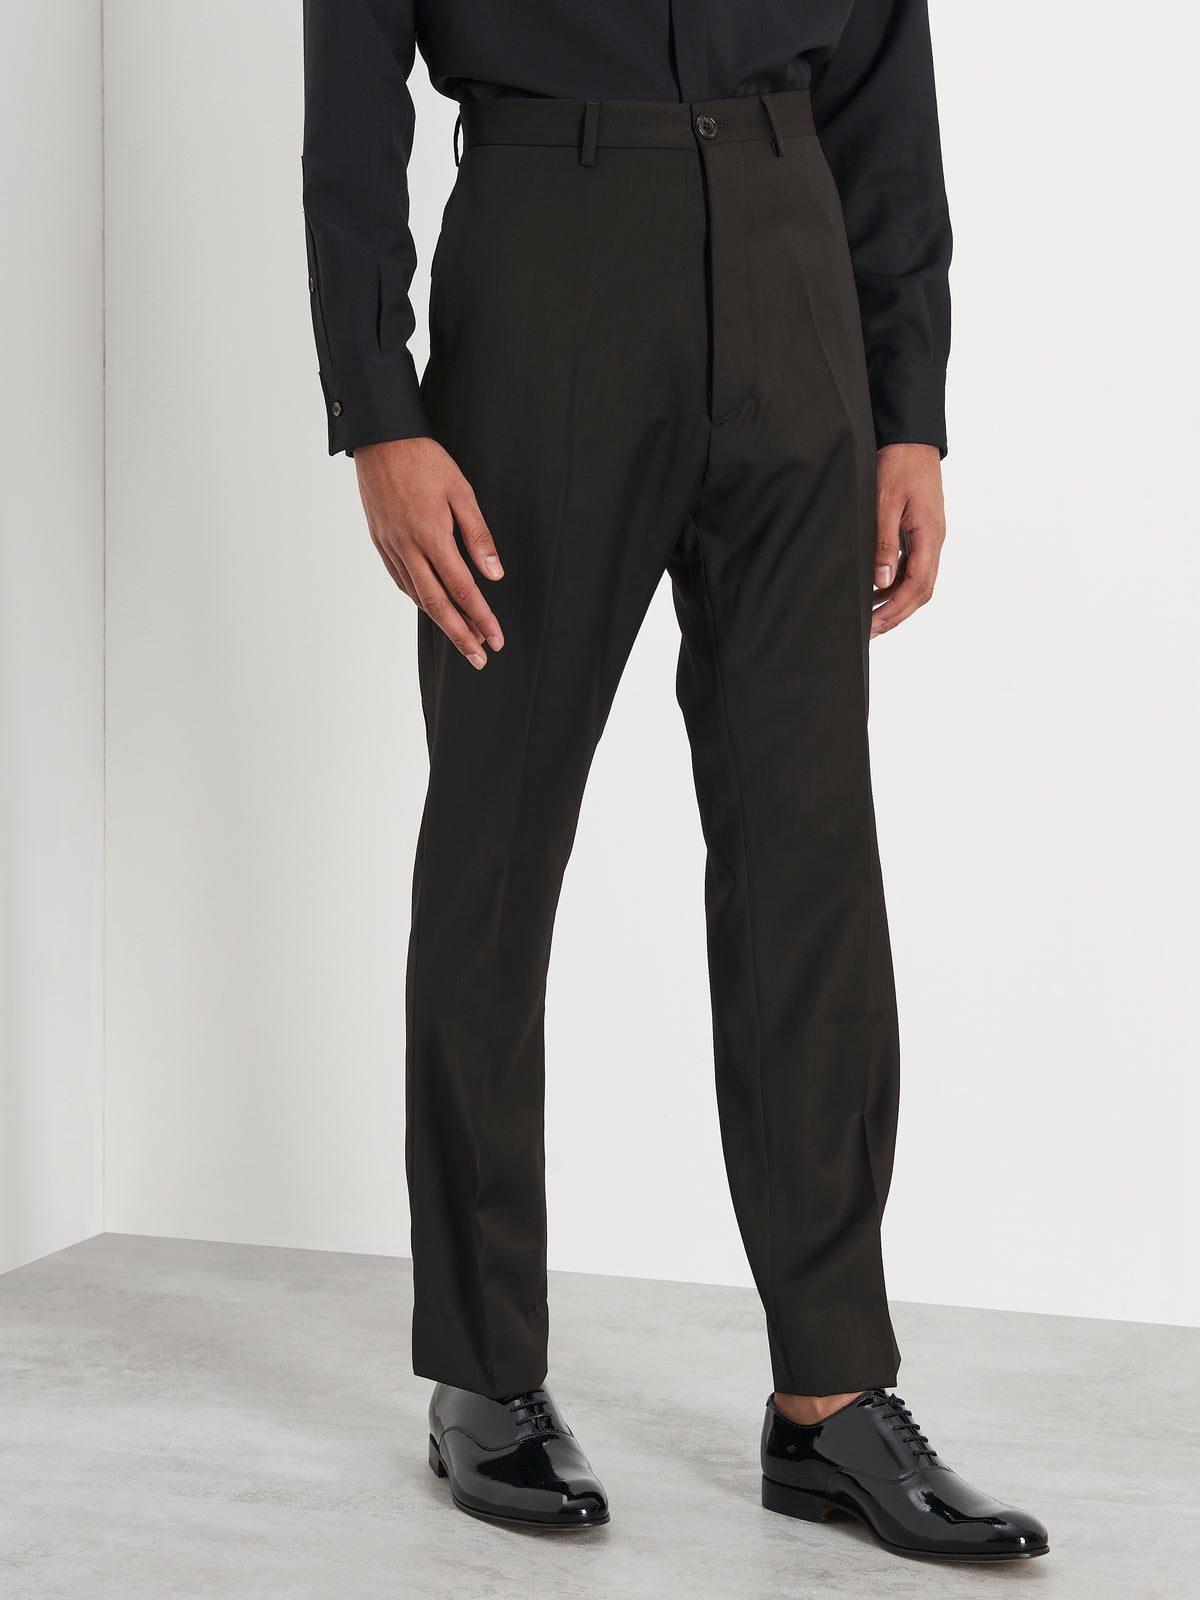 Prince trousers in black